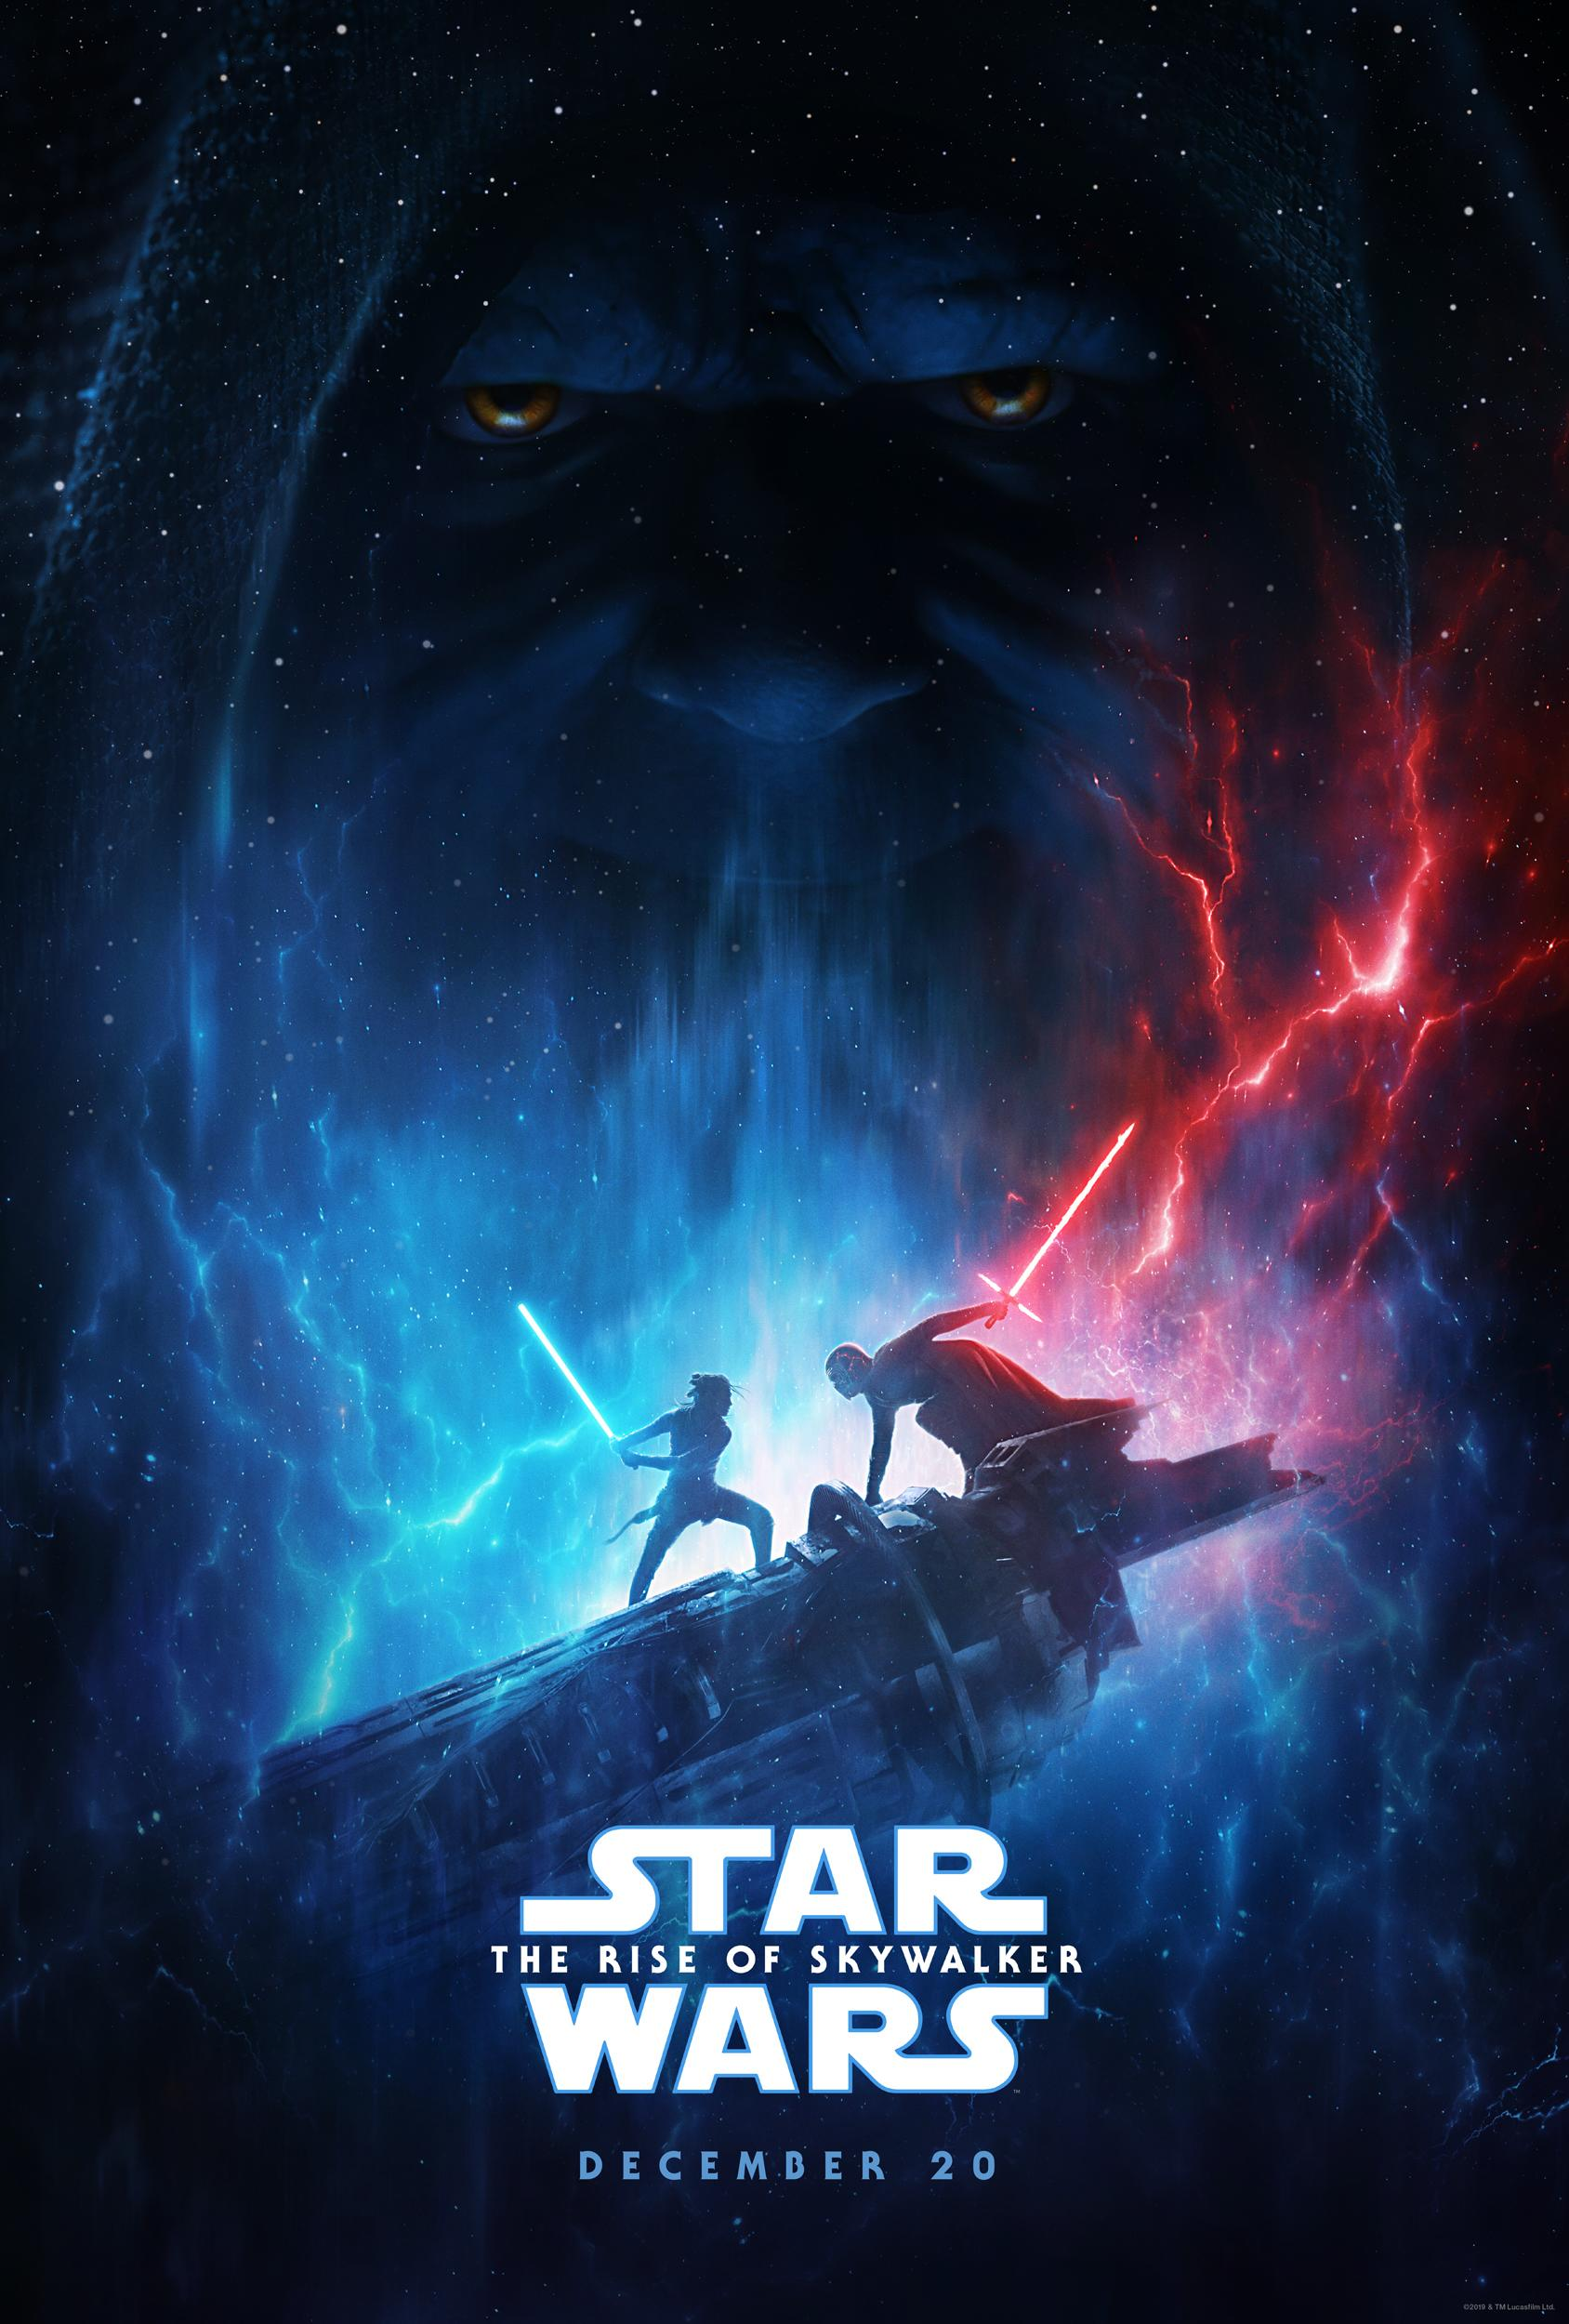 <i>Star Wars: The Rise of Skywalker</i> D23 teaser poster (Image: Lucasfilm)